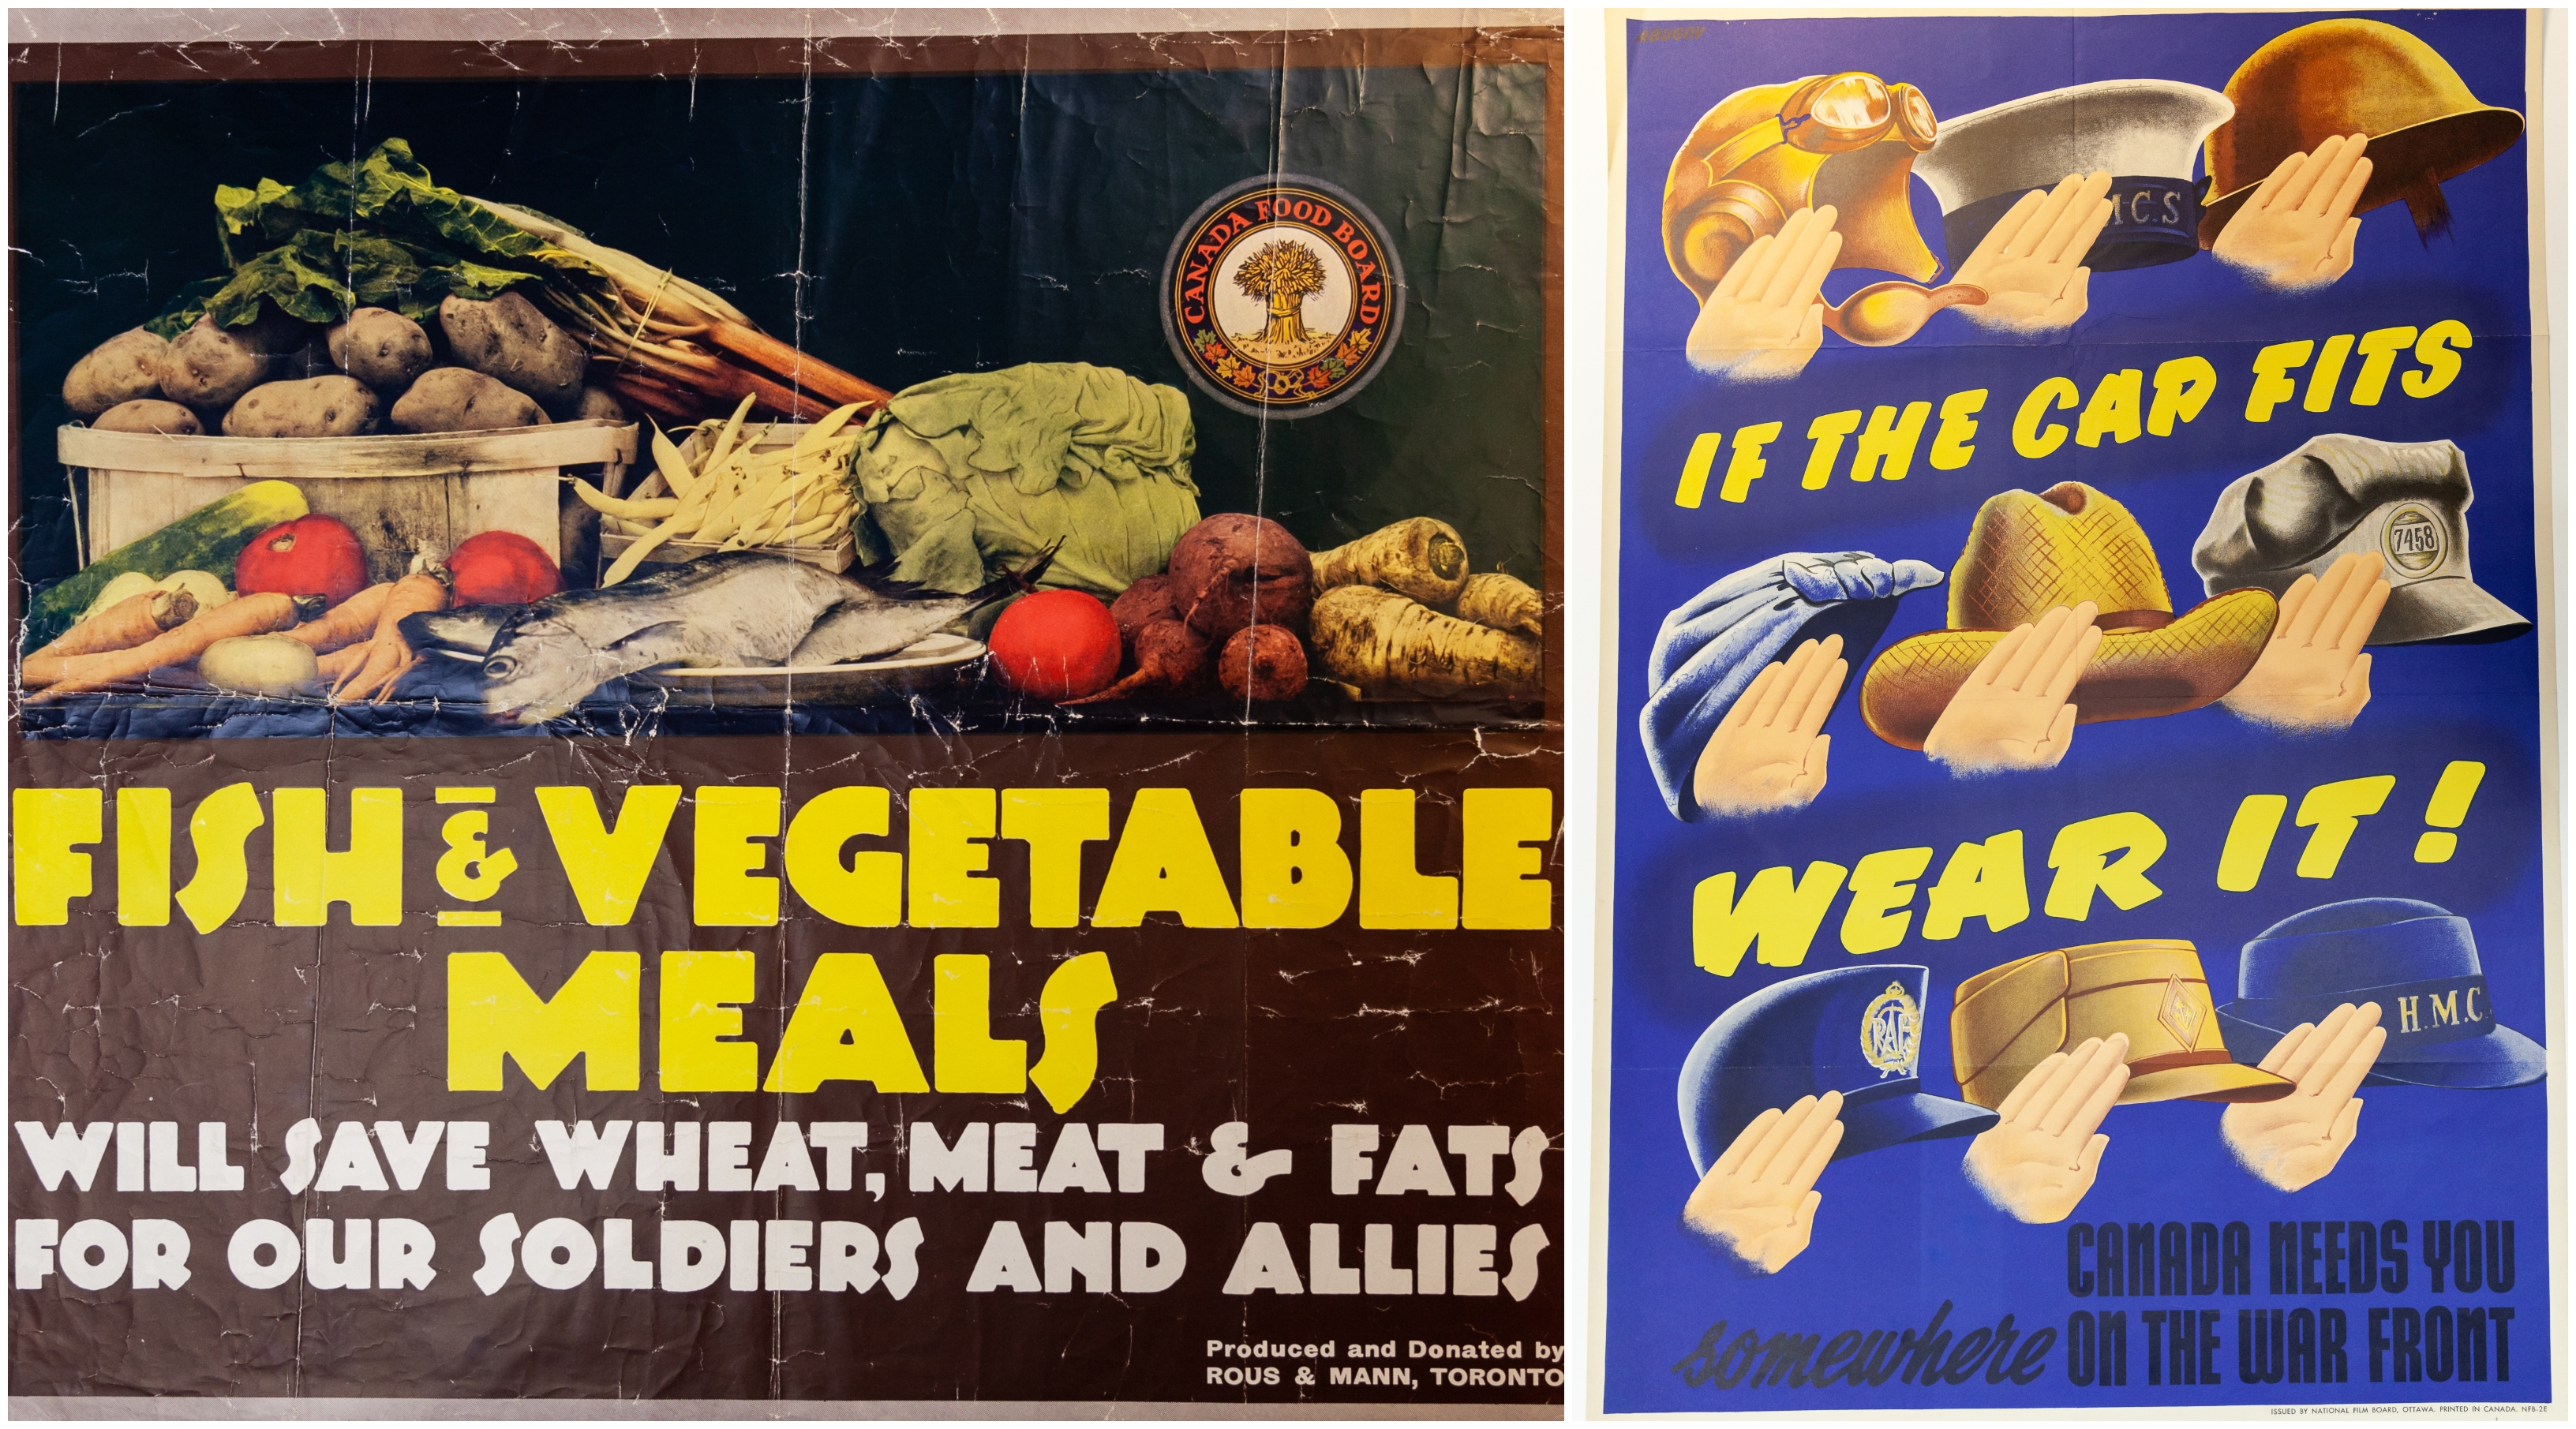 """Fish and Vegetable Meals will save wheat, meat and fats for our soldiers and allies"" poster, no C25, First World War poster collection, 1914. ""If the Cap Fits, Wear it!"" poster, no. C3, Second World War poster collection, 1939-1945"